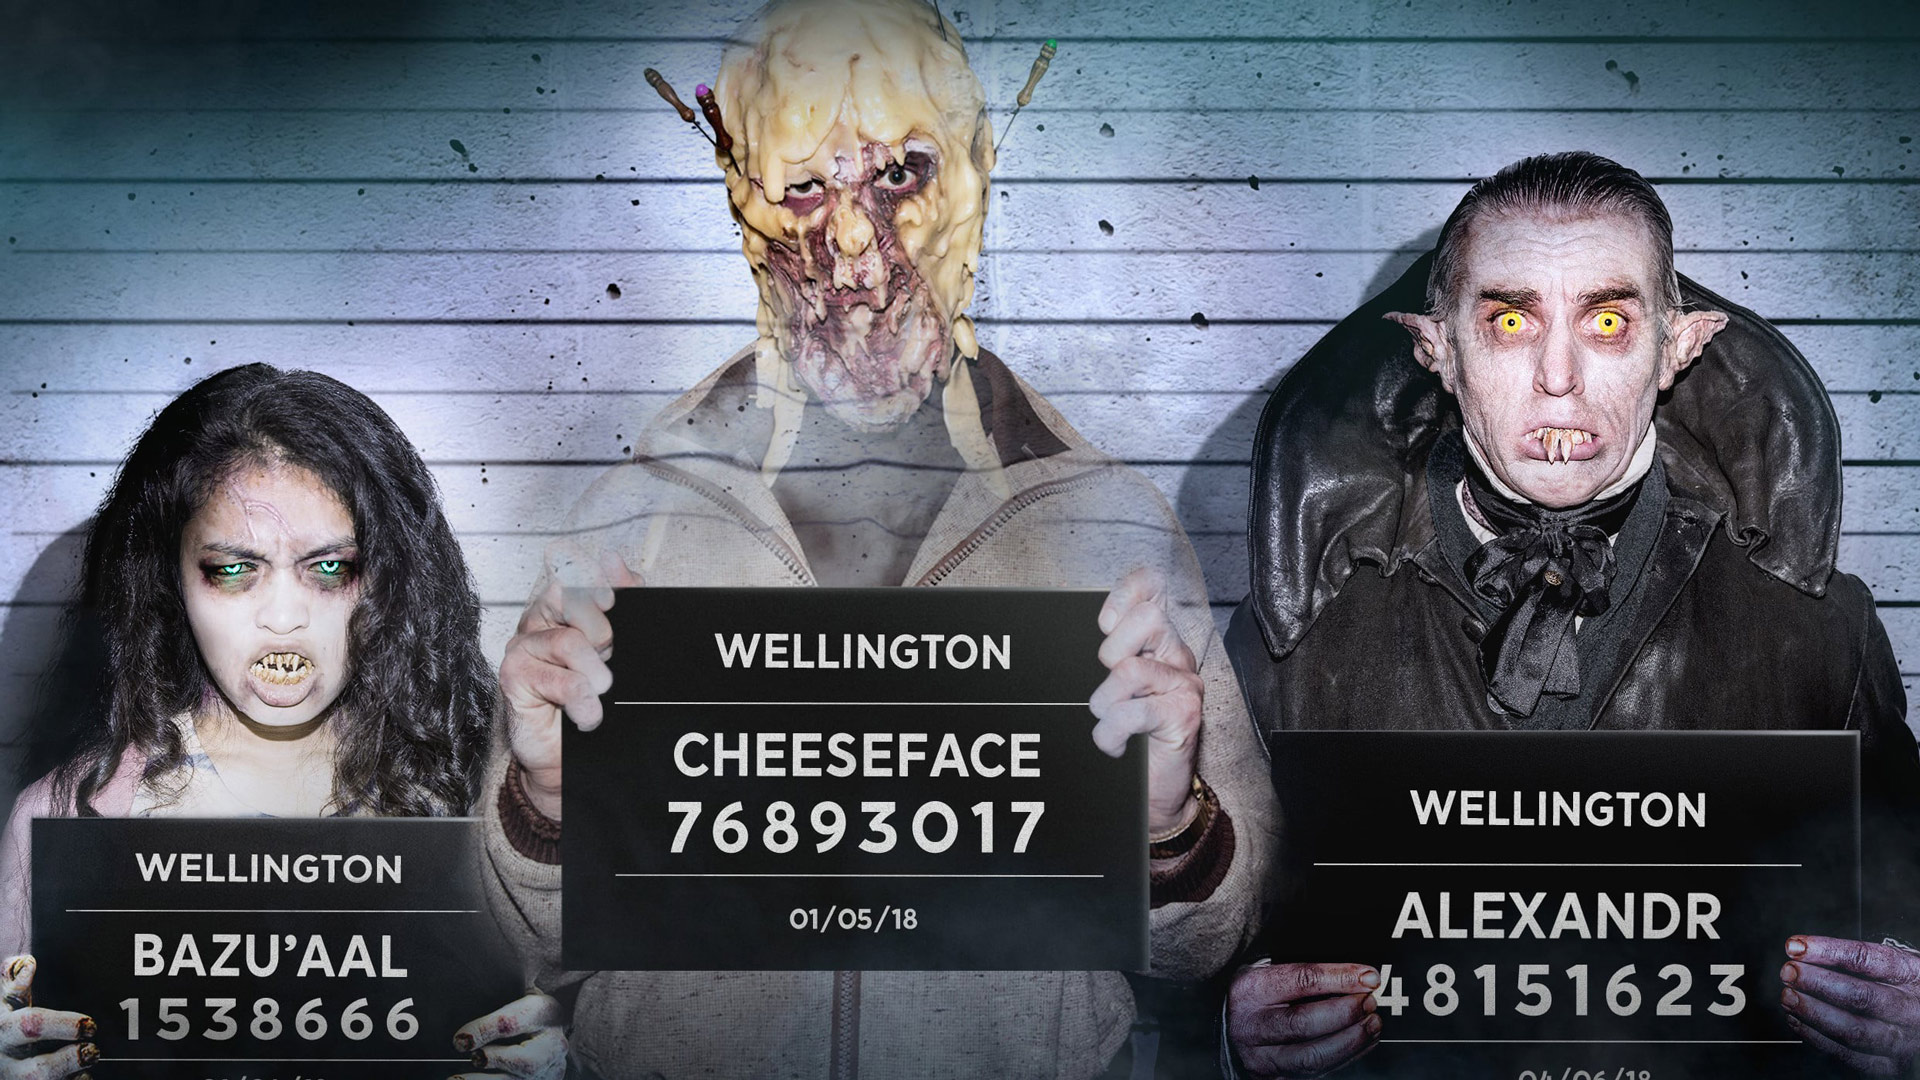 WELLINGTONPARANORMAL